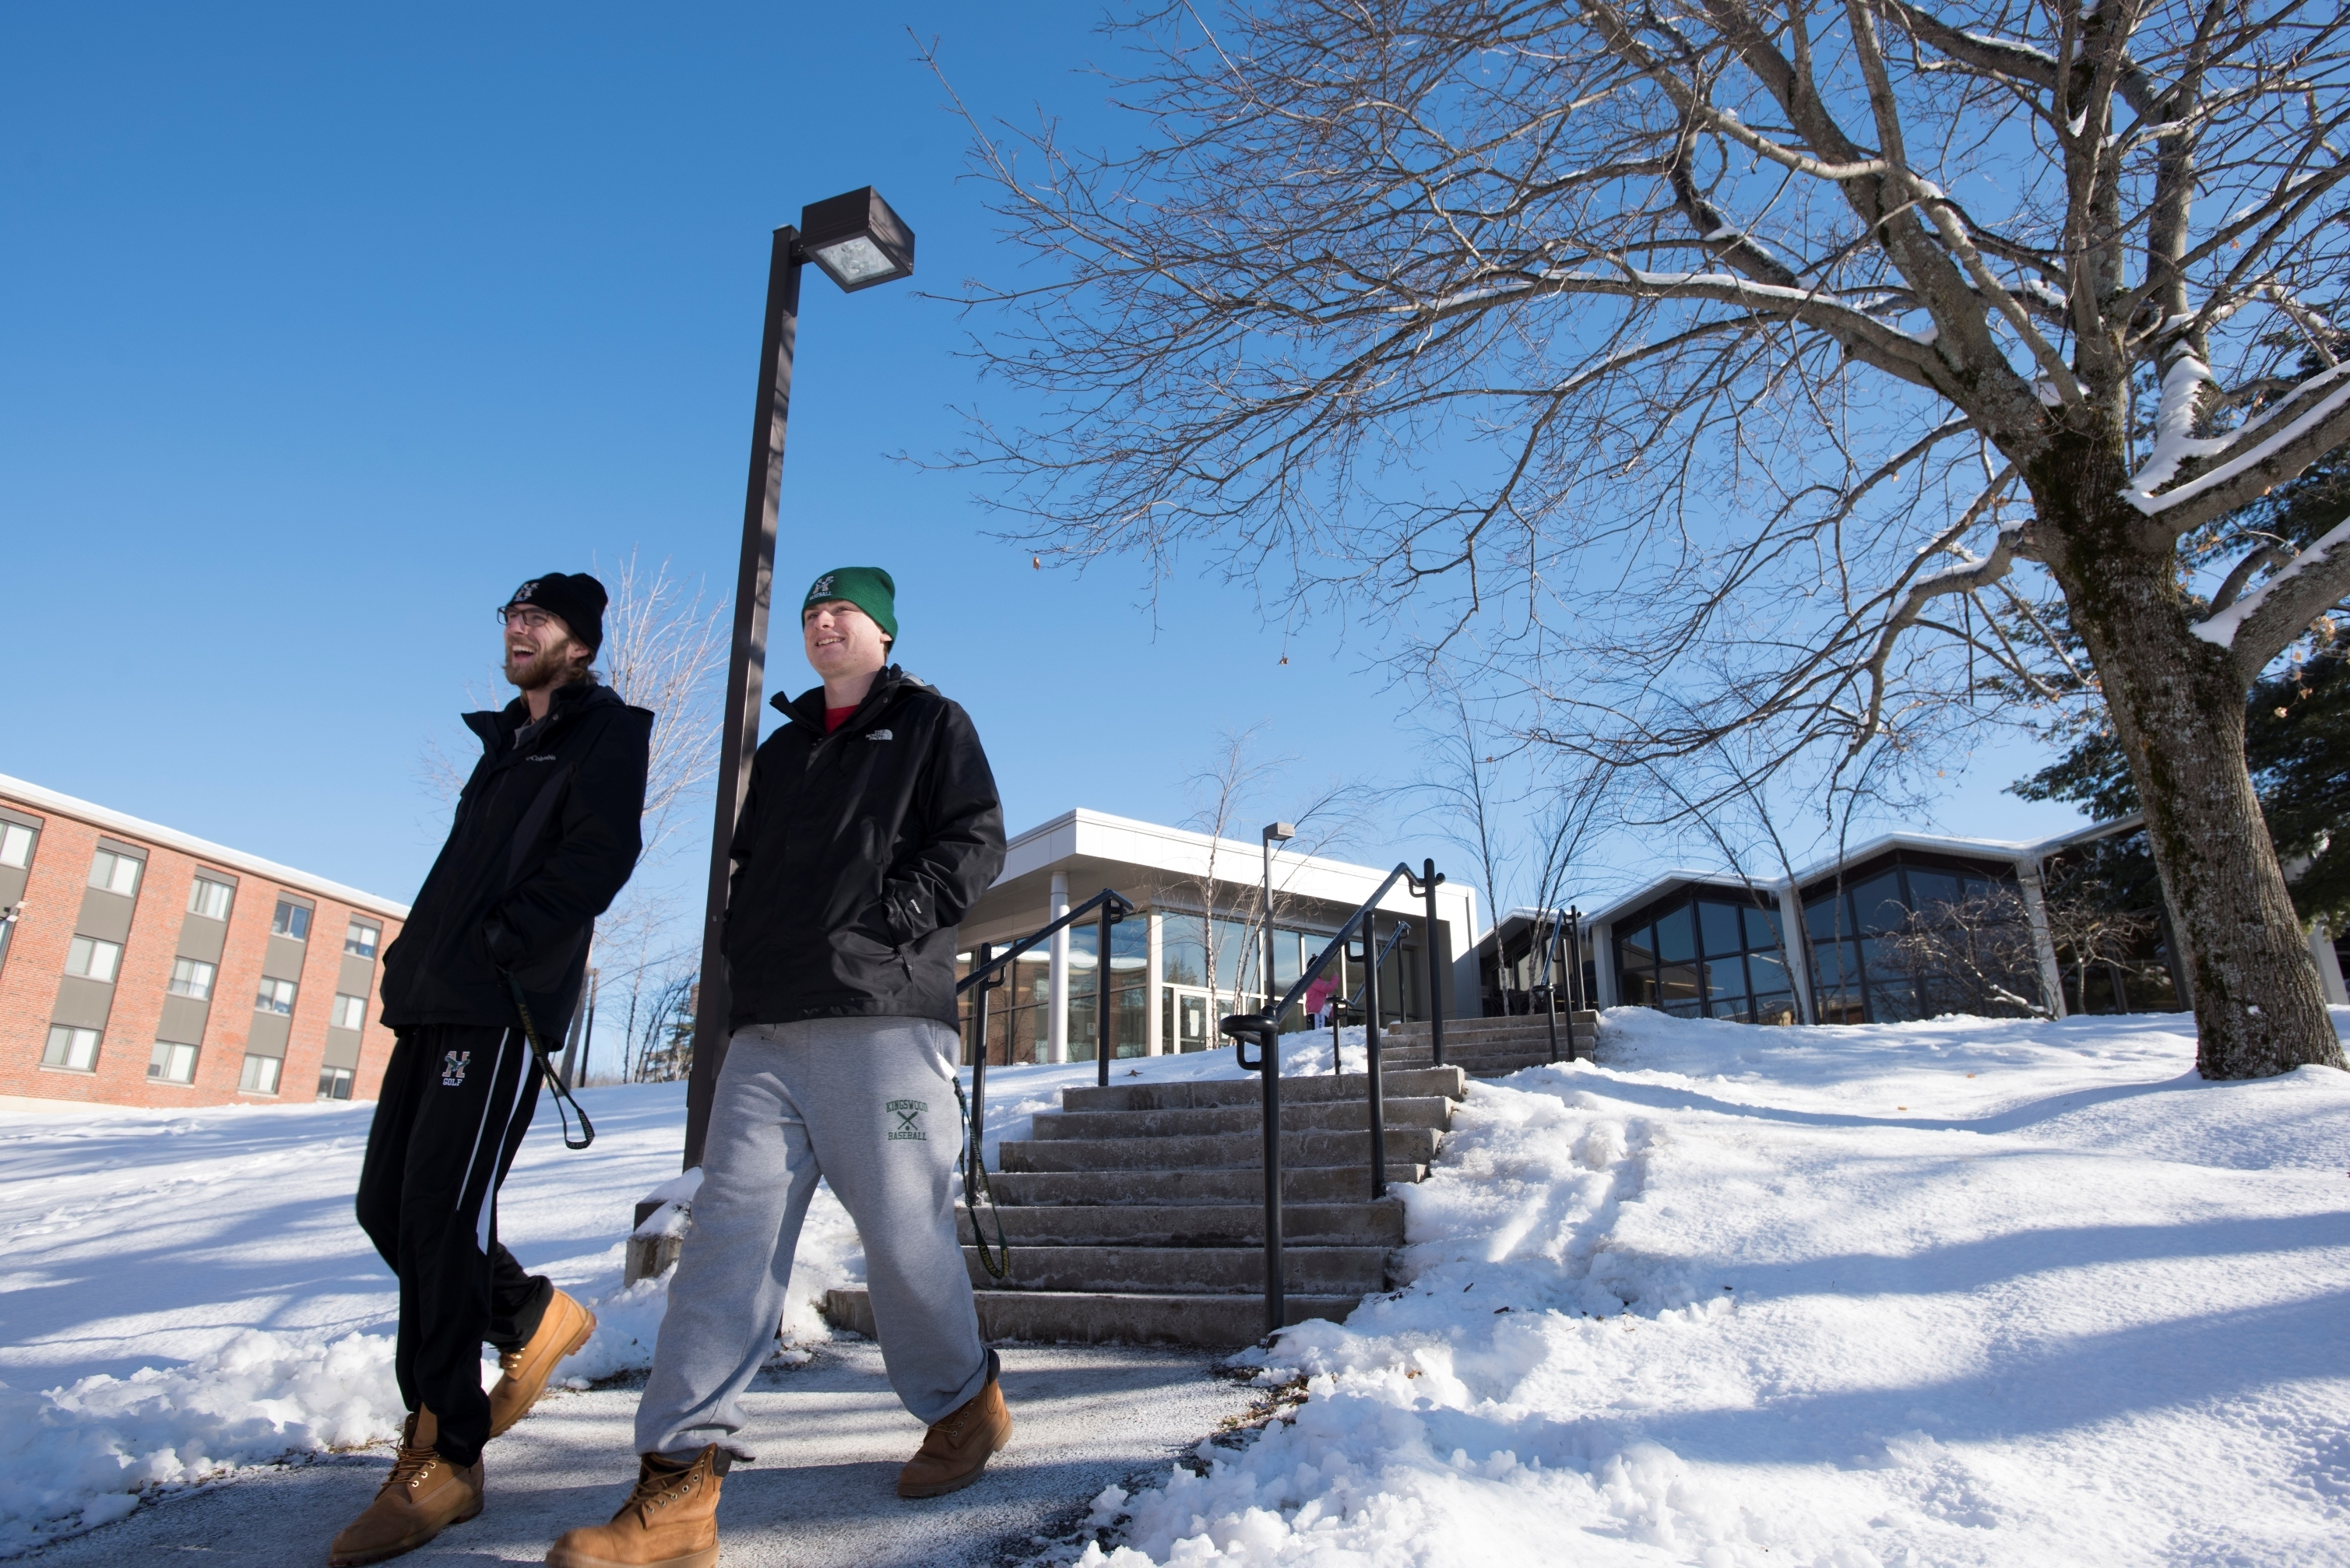 Students near ddc steps in the snow   1.2